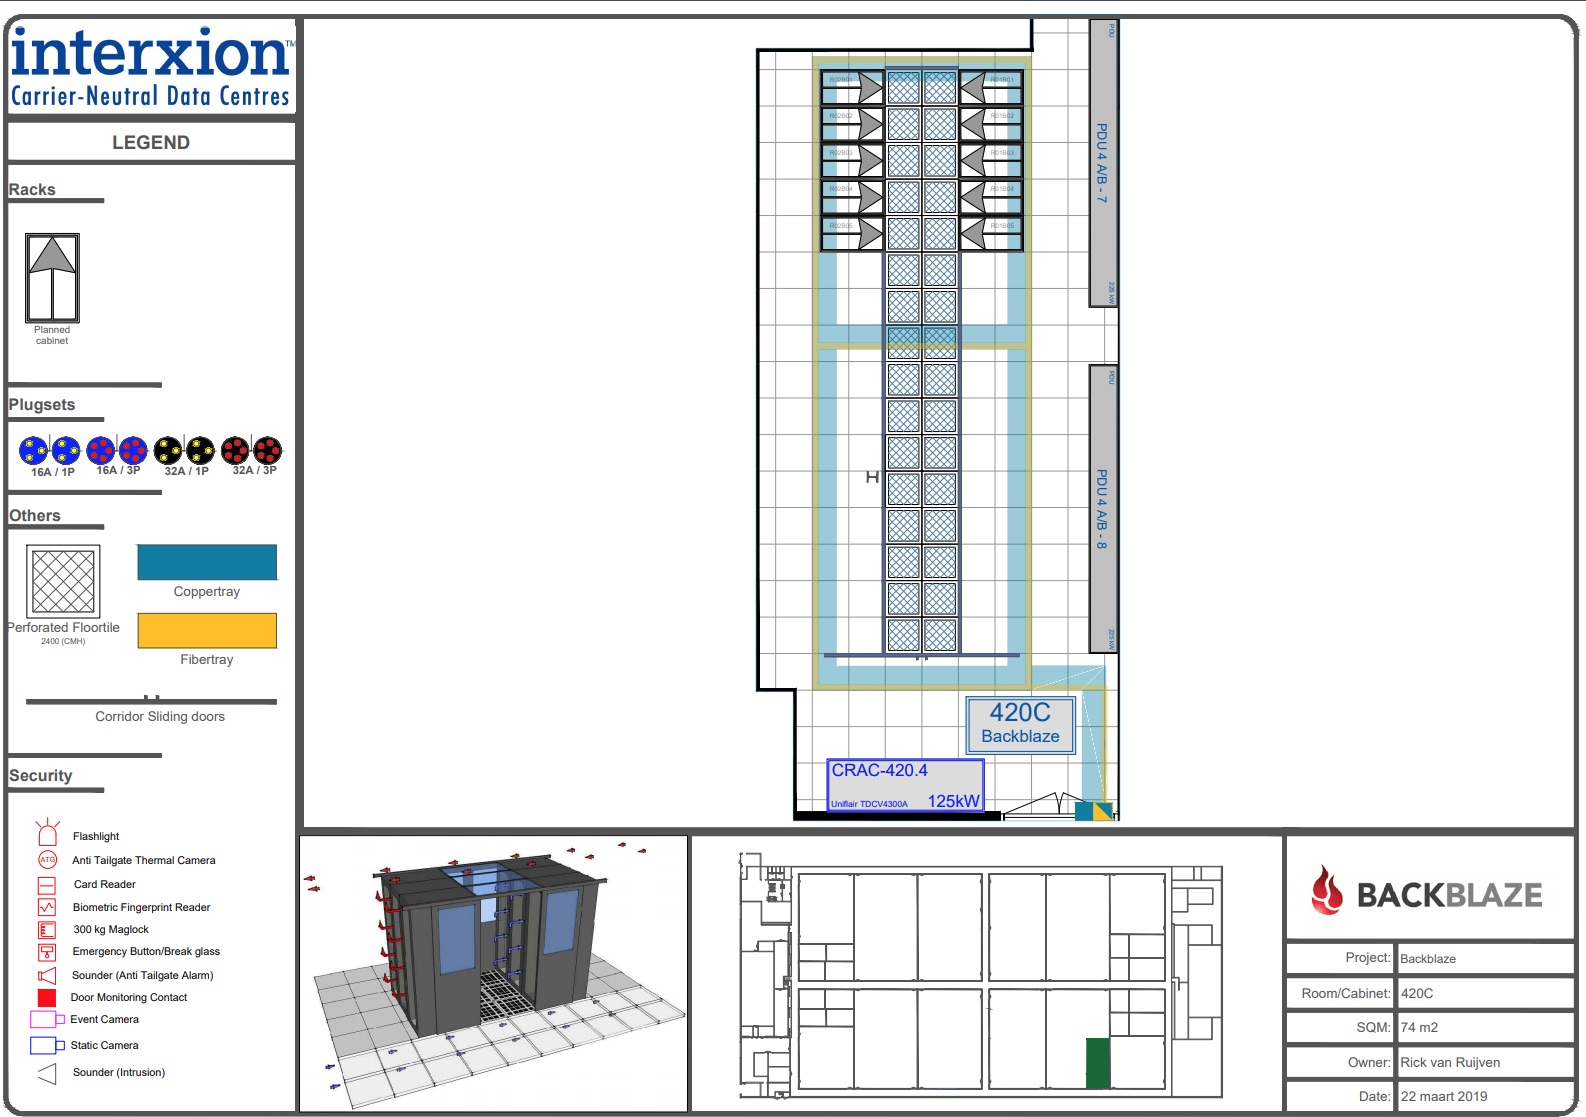 Interxion - Backblaze data center floor plan